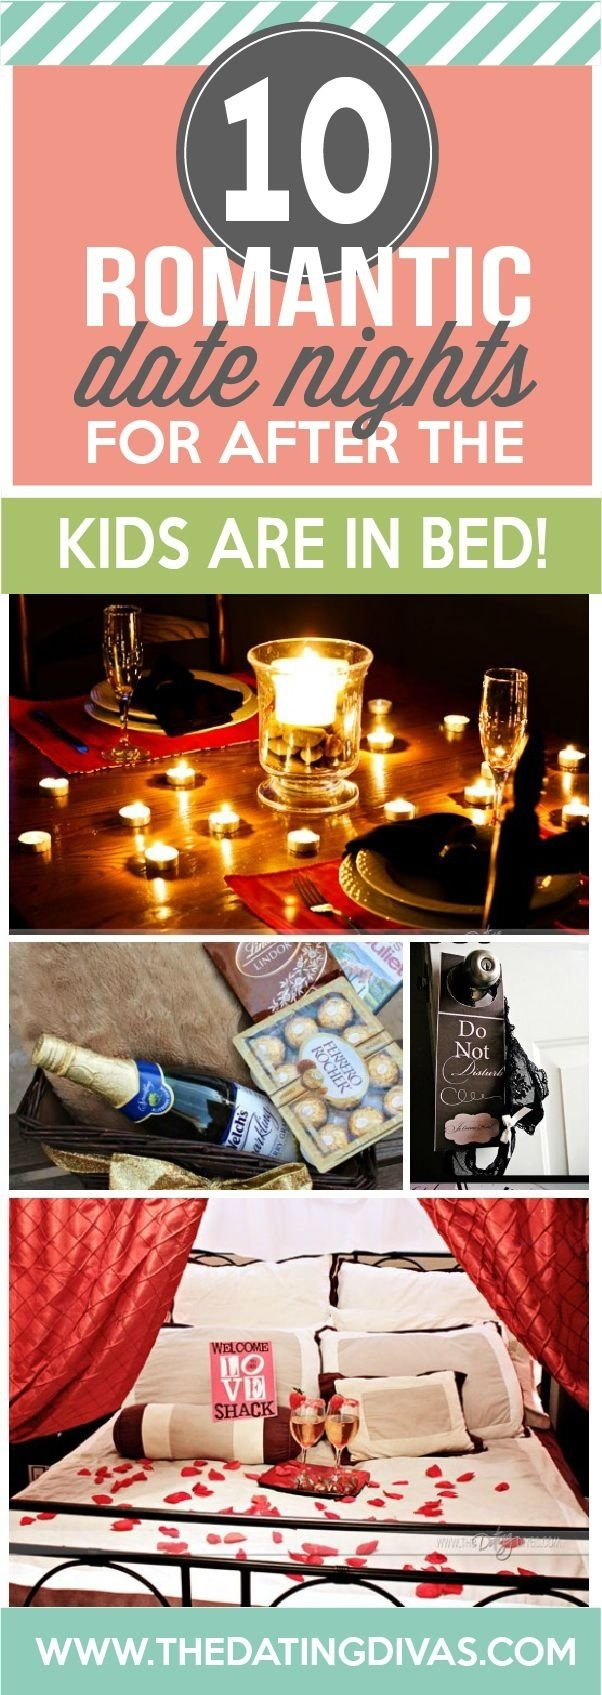 10 Trendy Romantic Ideas For My Wife 202 best date night ideas images on pinterest families happy wife 1 2020